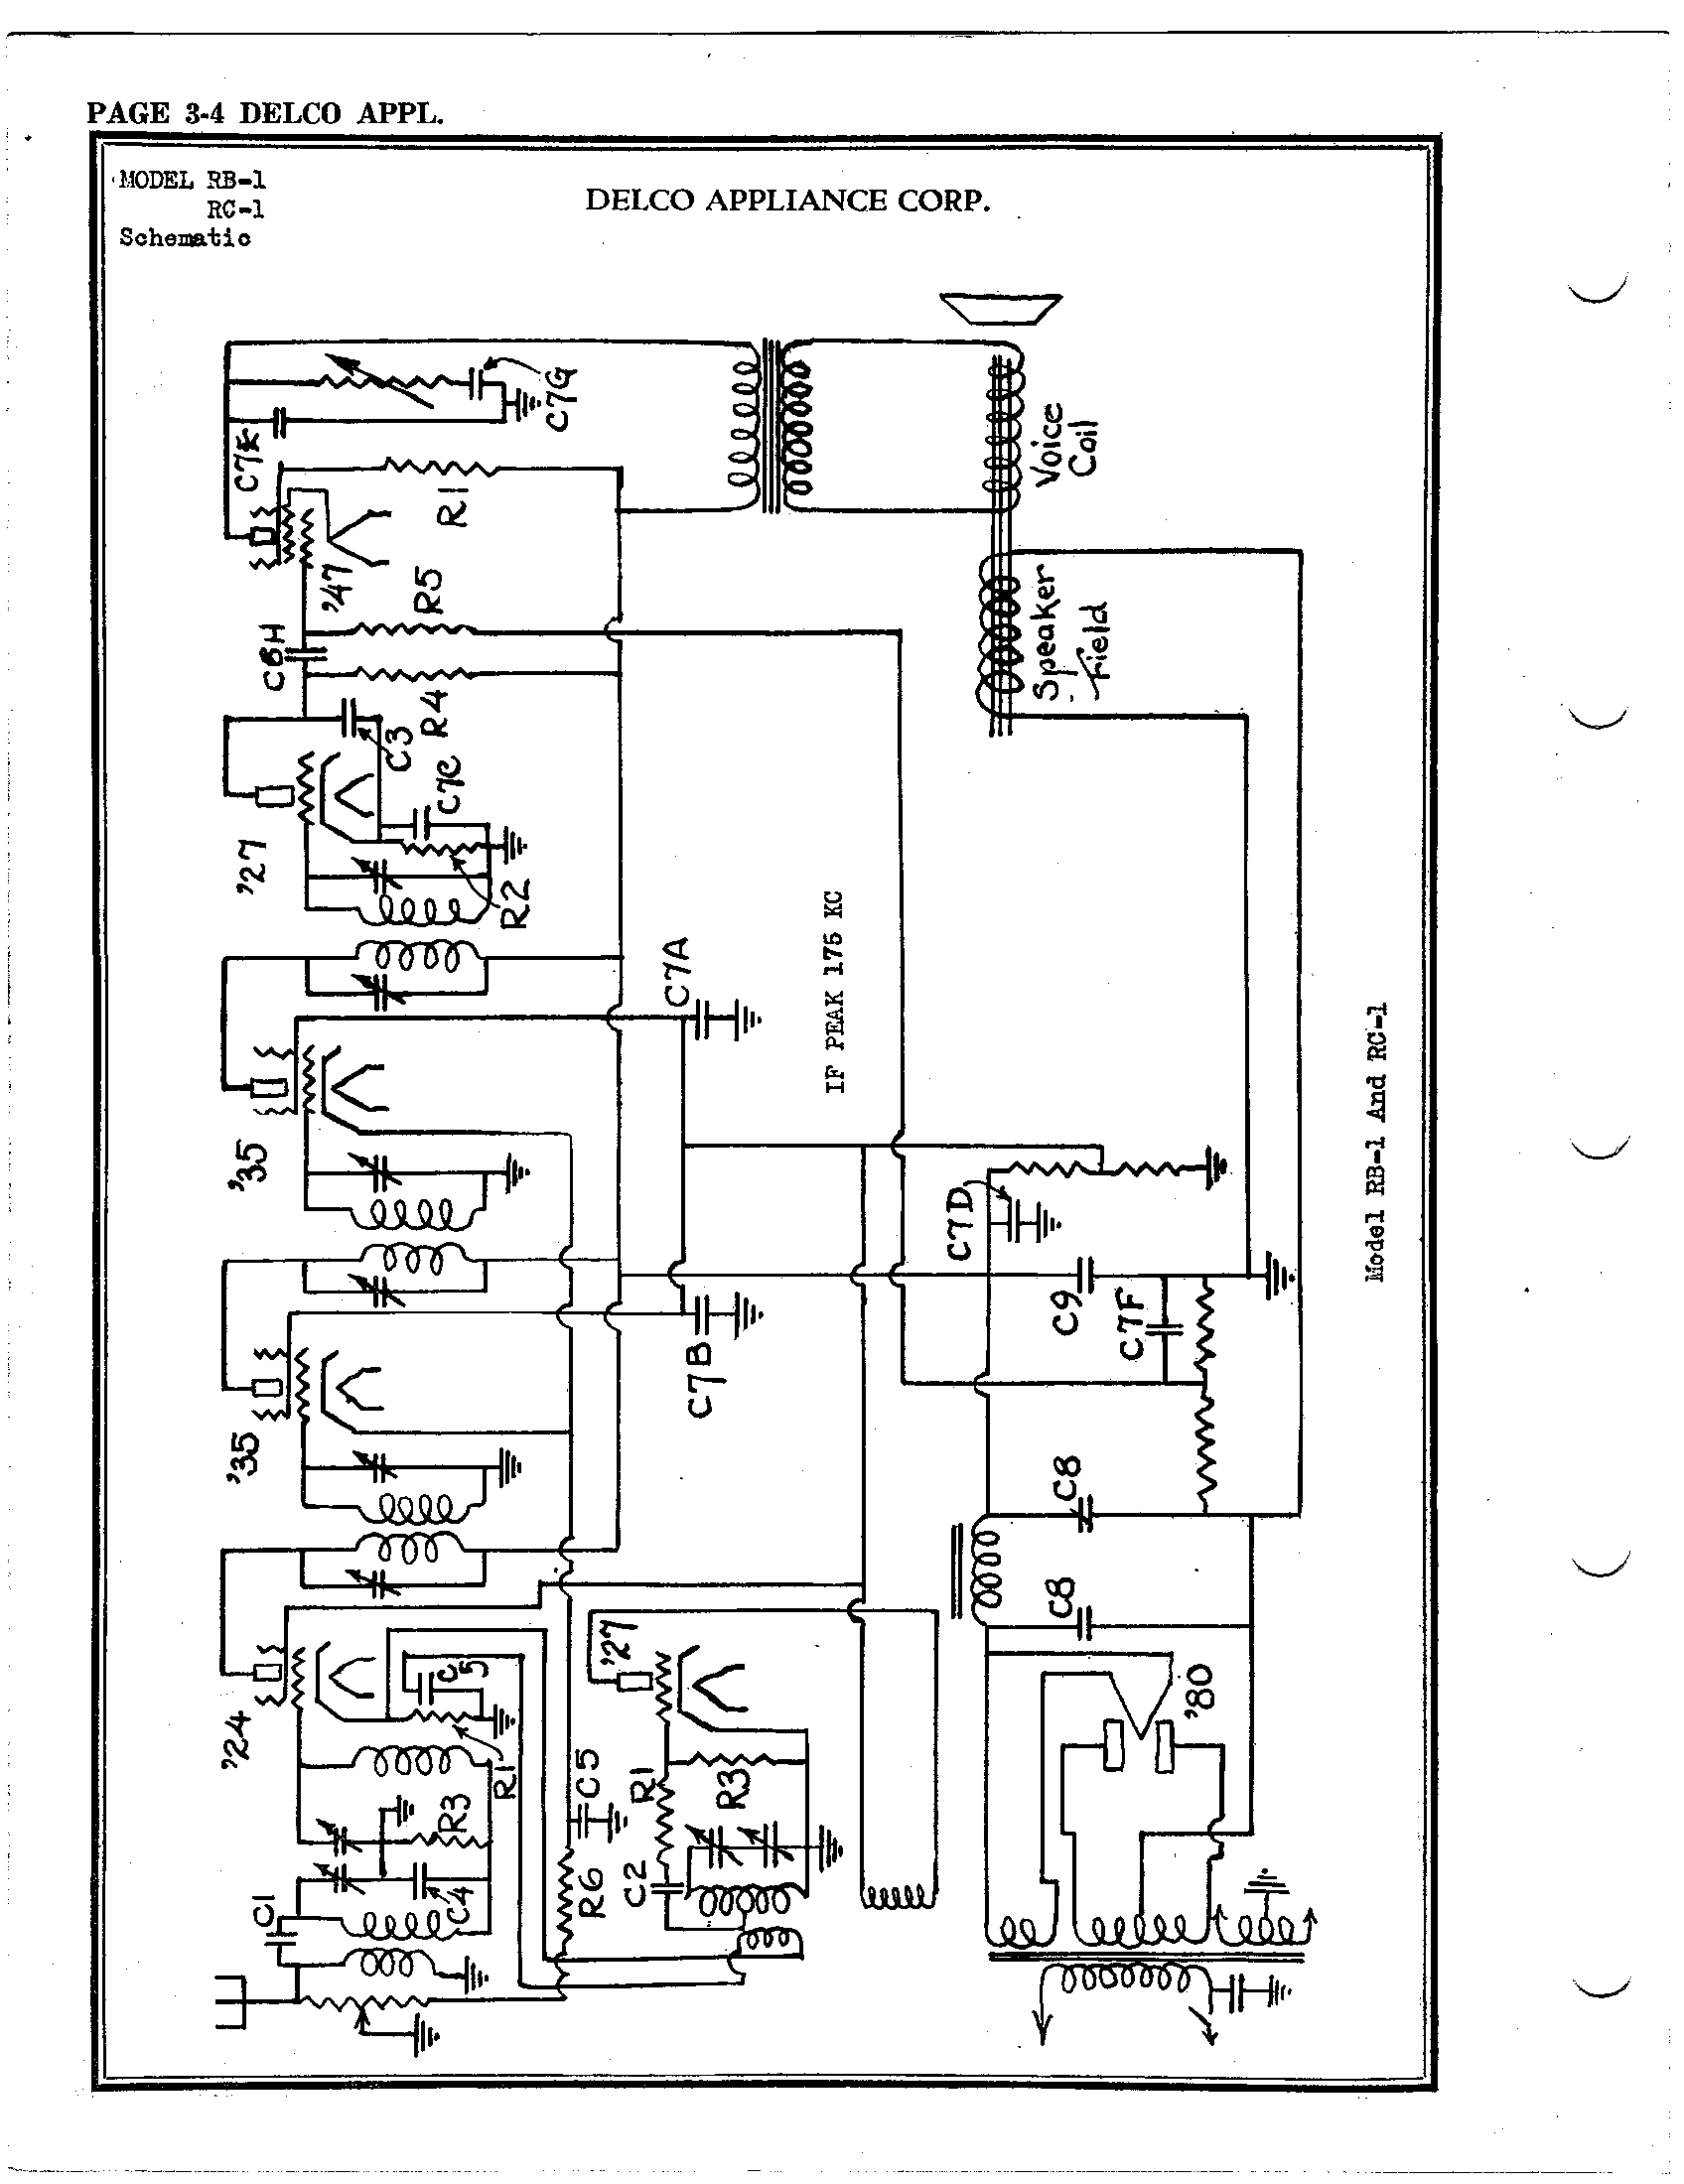 [DIAGRAM_3US]  VM_5137] Delco 09383075 Wiring Schematic Model Download Diagram | Delco Radio Wiring Diagram 1968 Chevelle |  | Funi Stap Drosi Exmet Mohammedshrine Librar Wiring 101